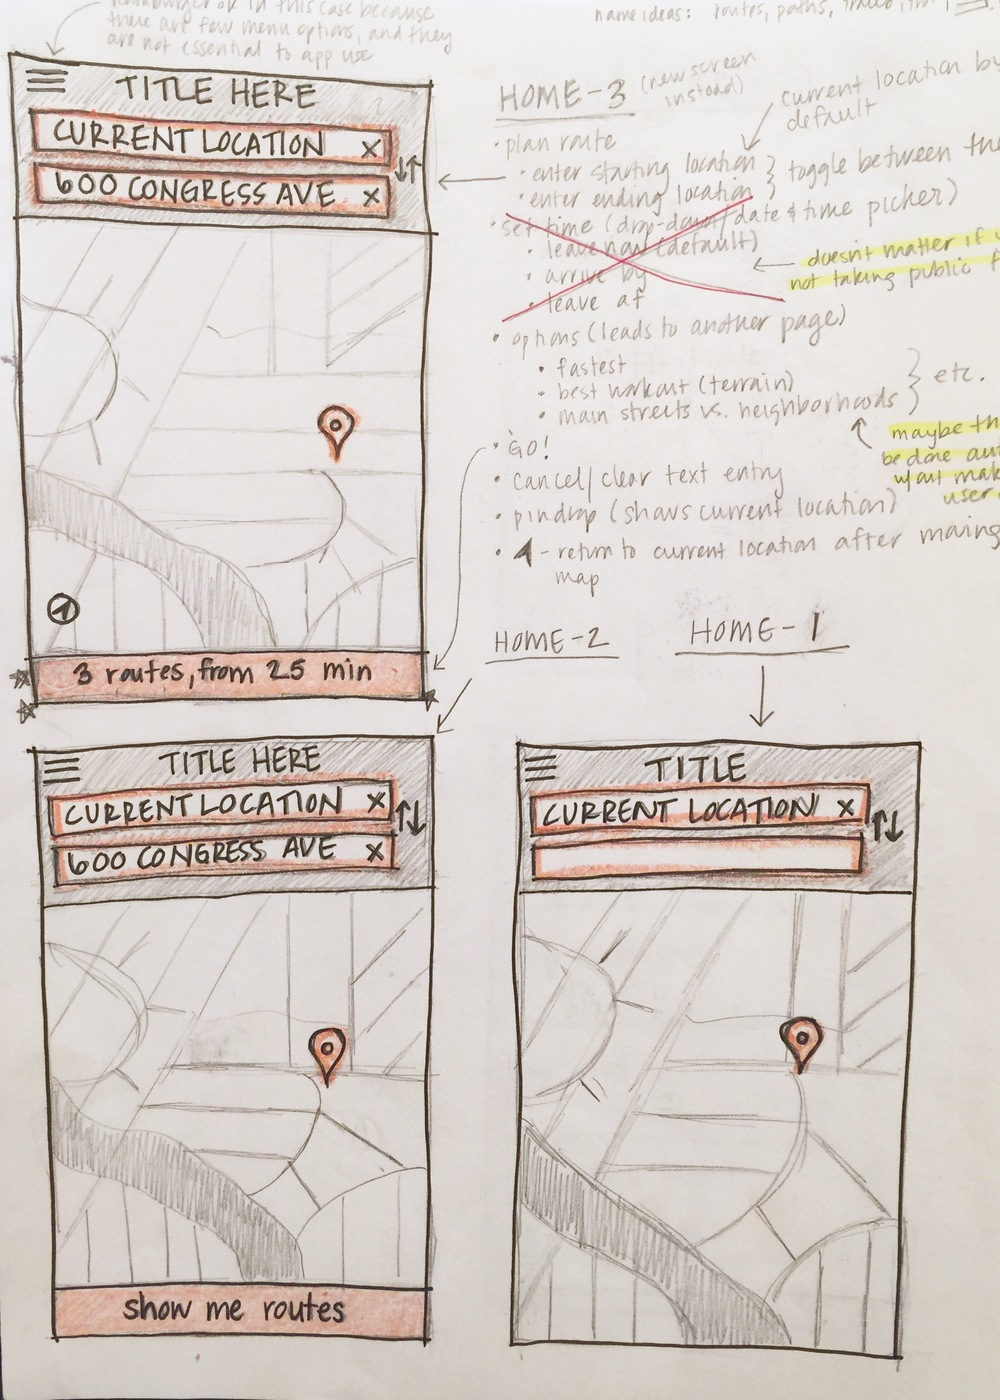 Note: Some notes and annotations added after usability testing.